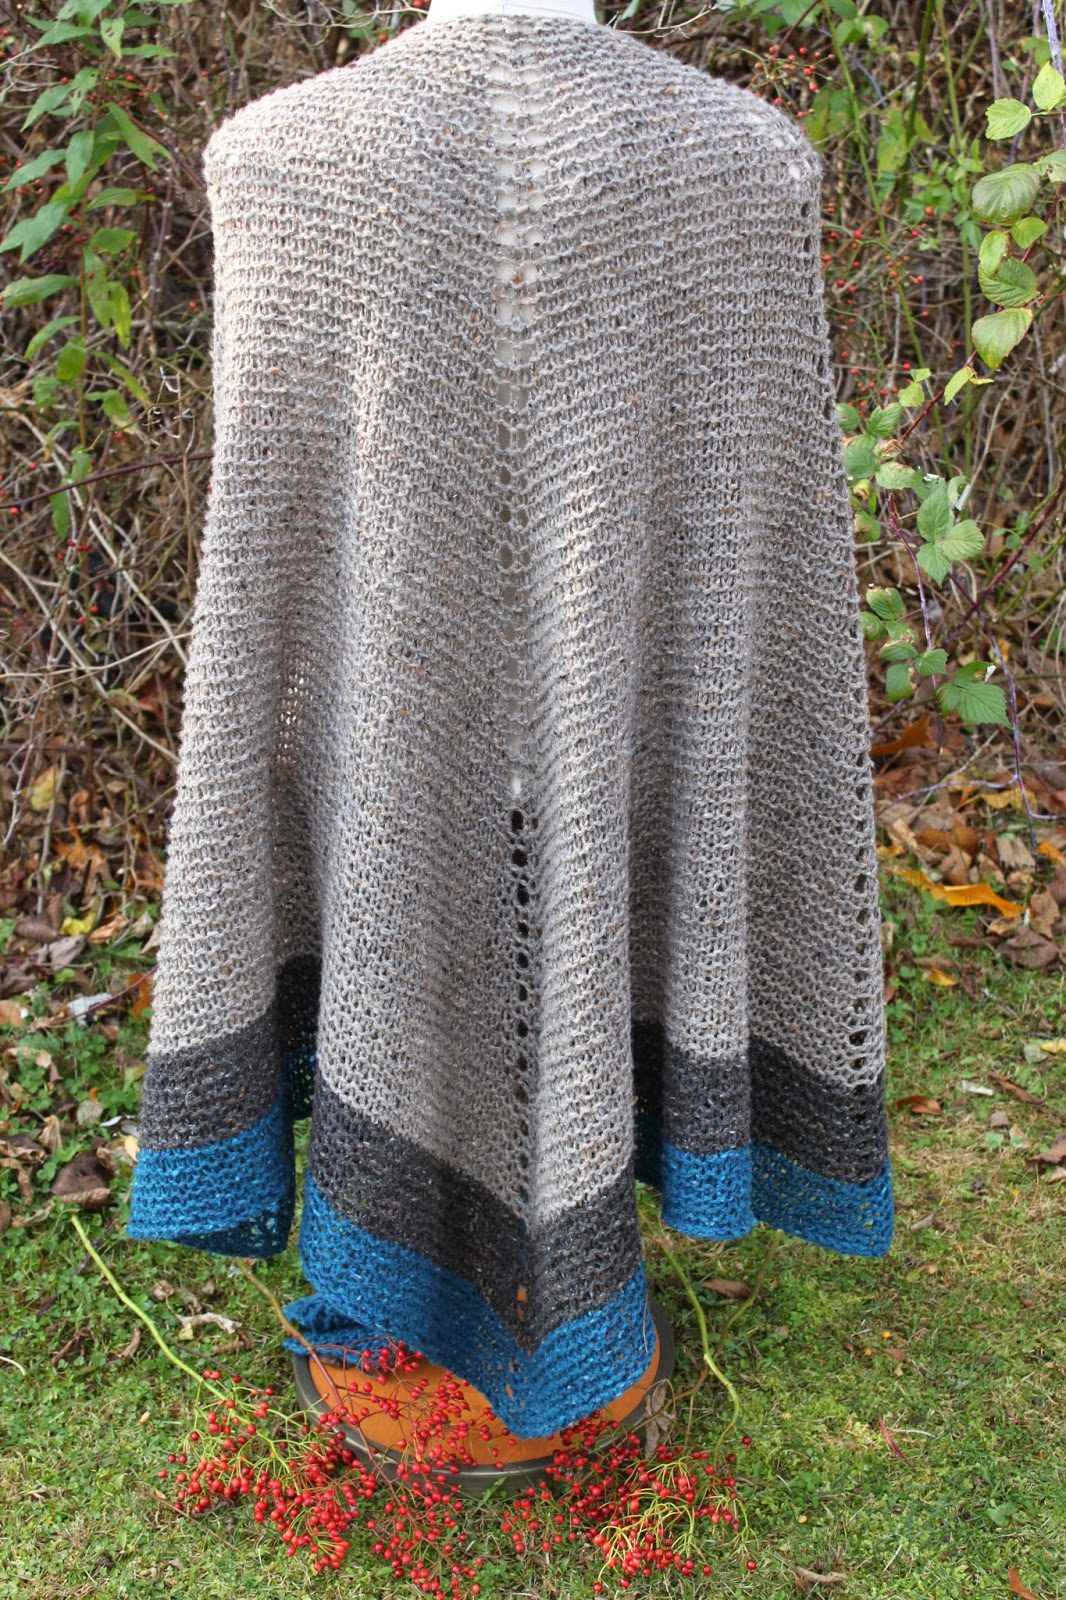 Knitting Pattern For Outlander Shawl : Celtic Heart Knitting and Quilting: Outlander Claire Rent Shawl